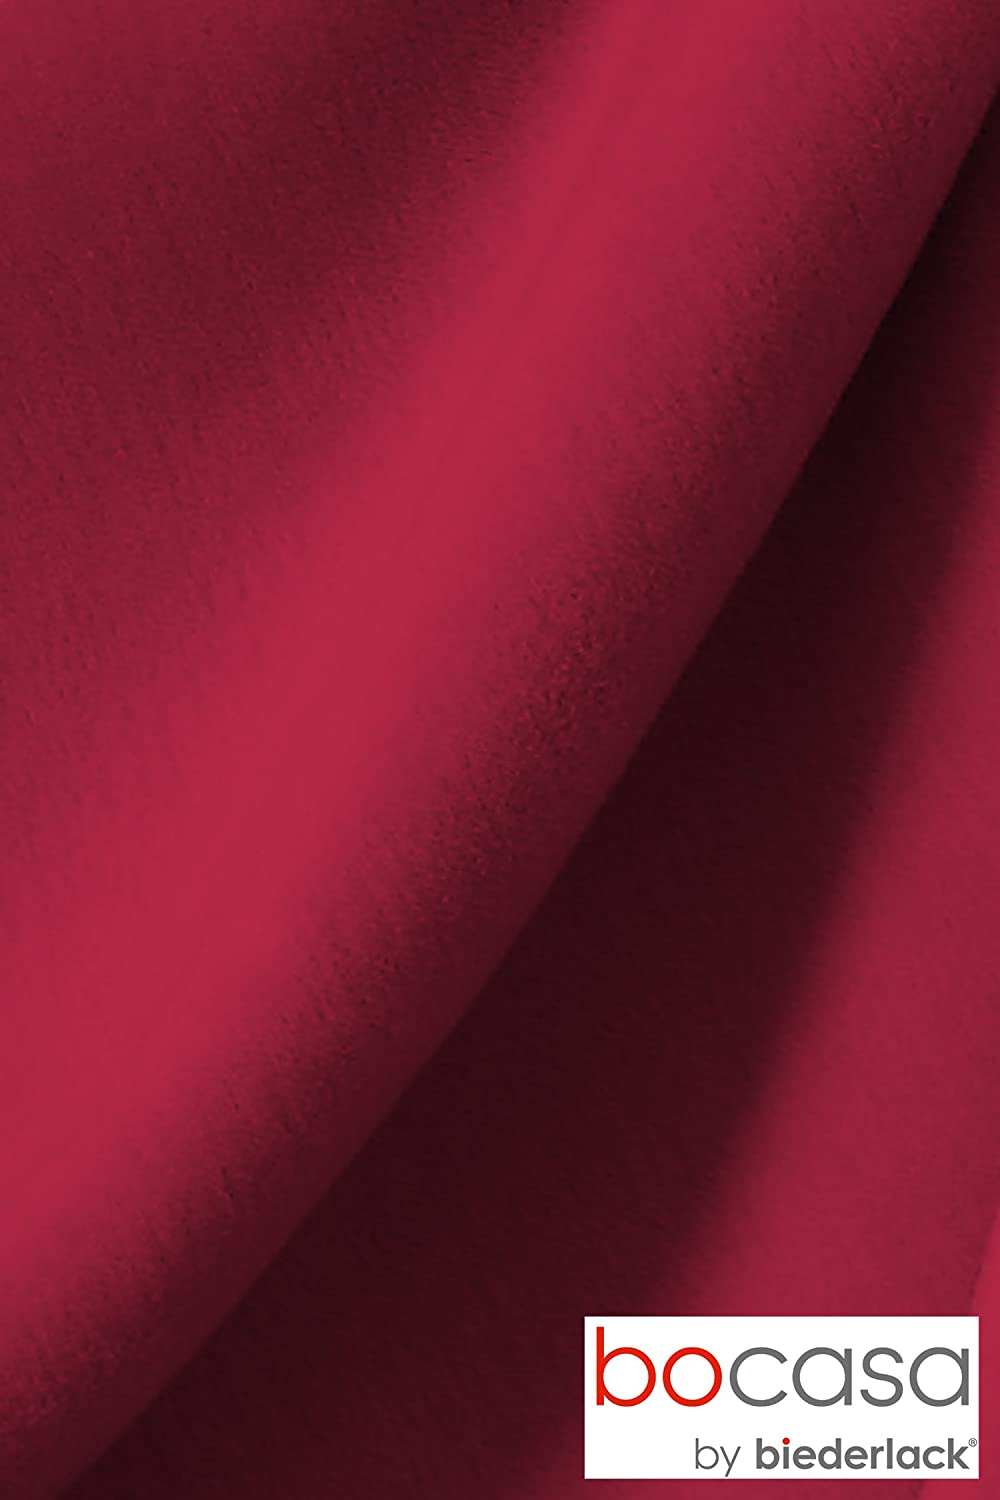 Bocasa by biederlack 66338 Couverture Cotton Pure Env 150 x 200 cm 100/% coton Terracotta